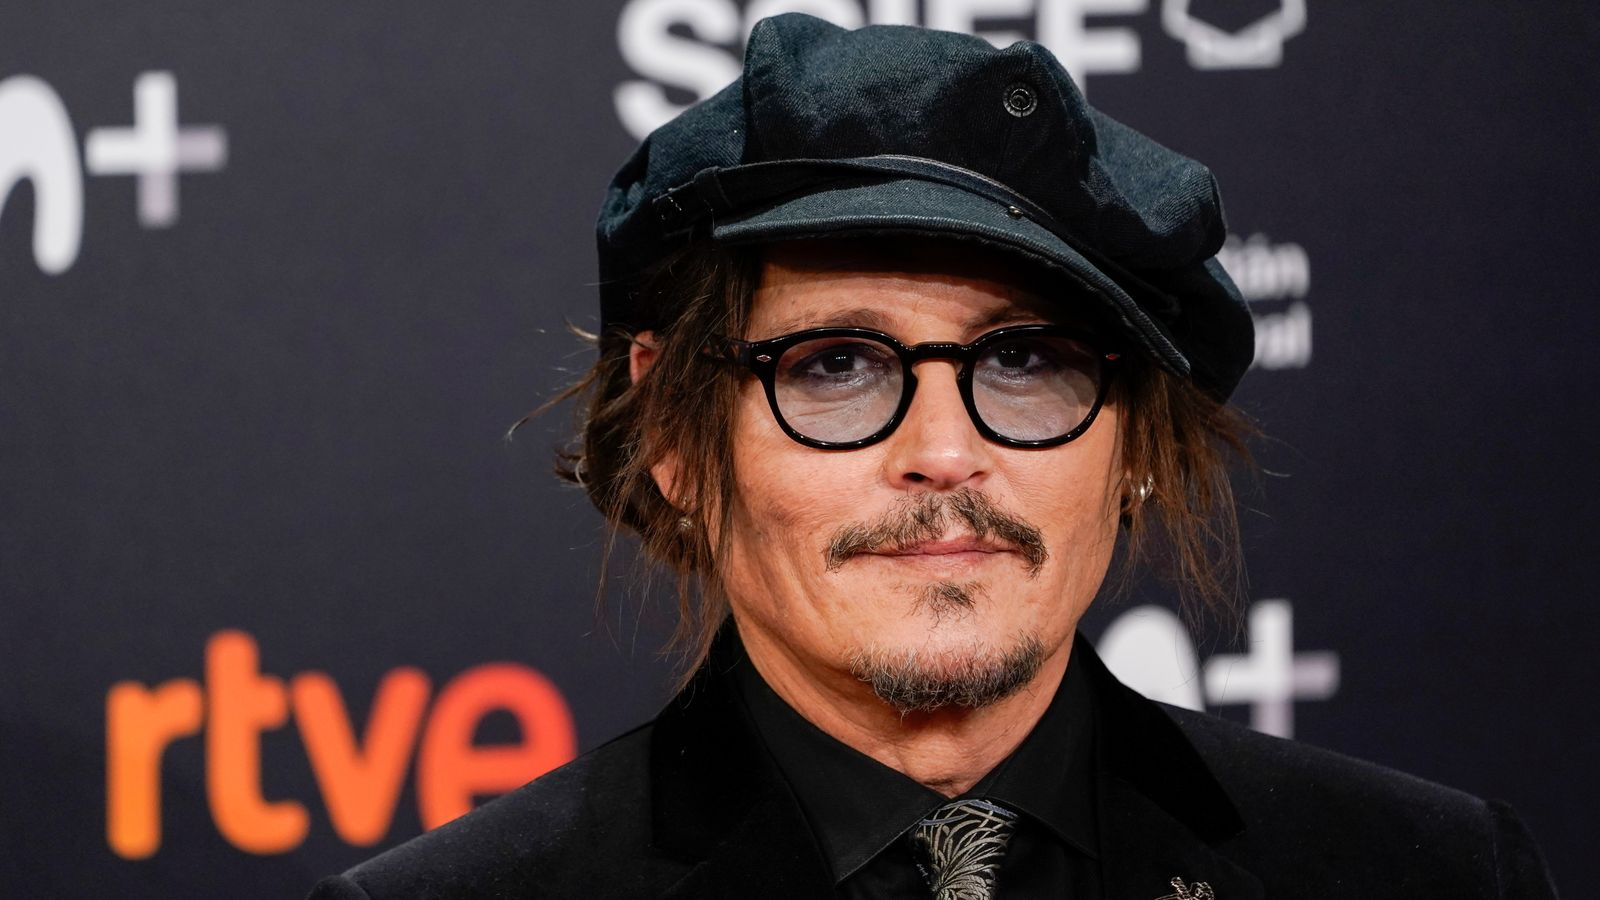 Johnny Depp says 'no one is safe' from cancel culture as he accepts major film festival award